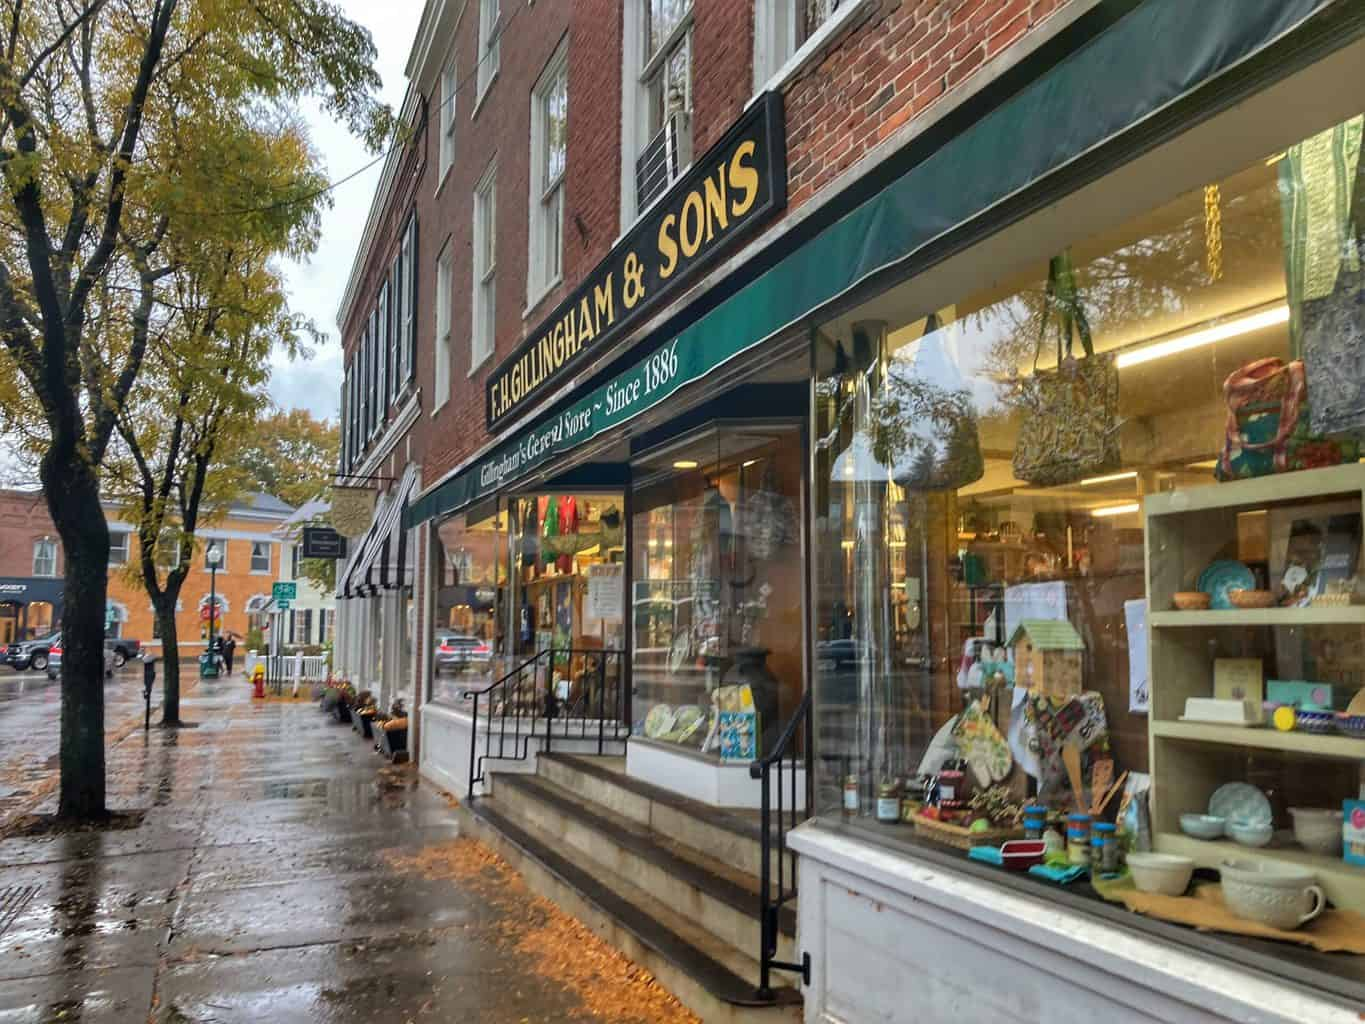 downtown Woodstock VT on a rainy day